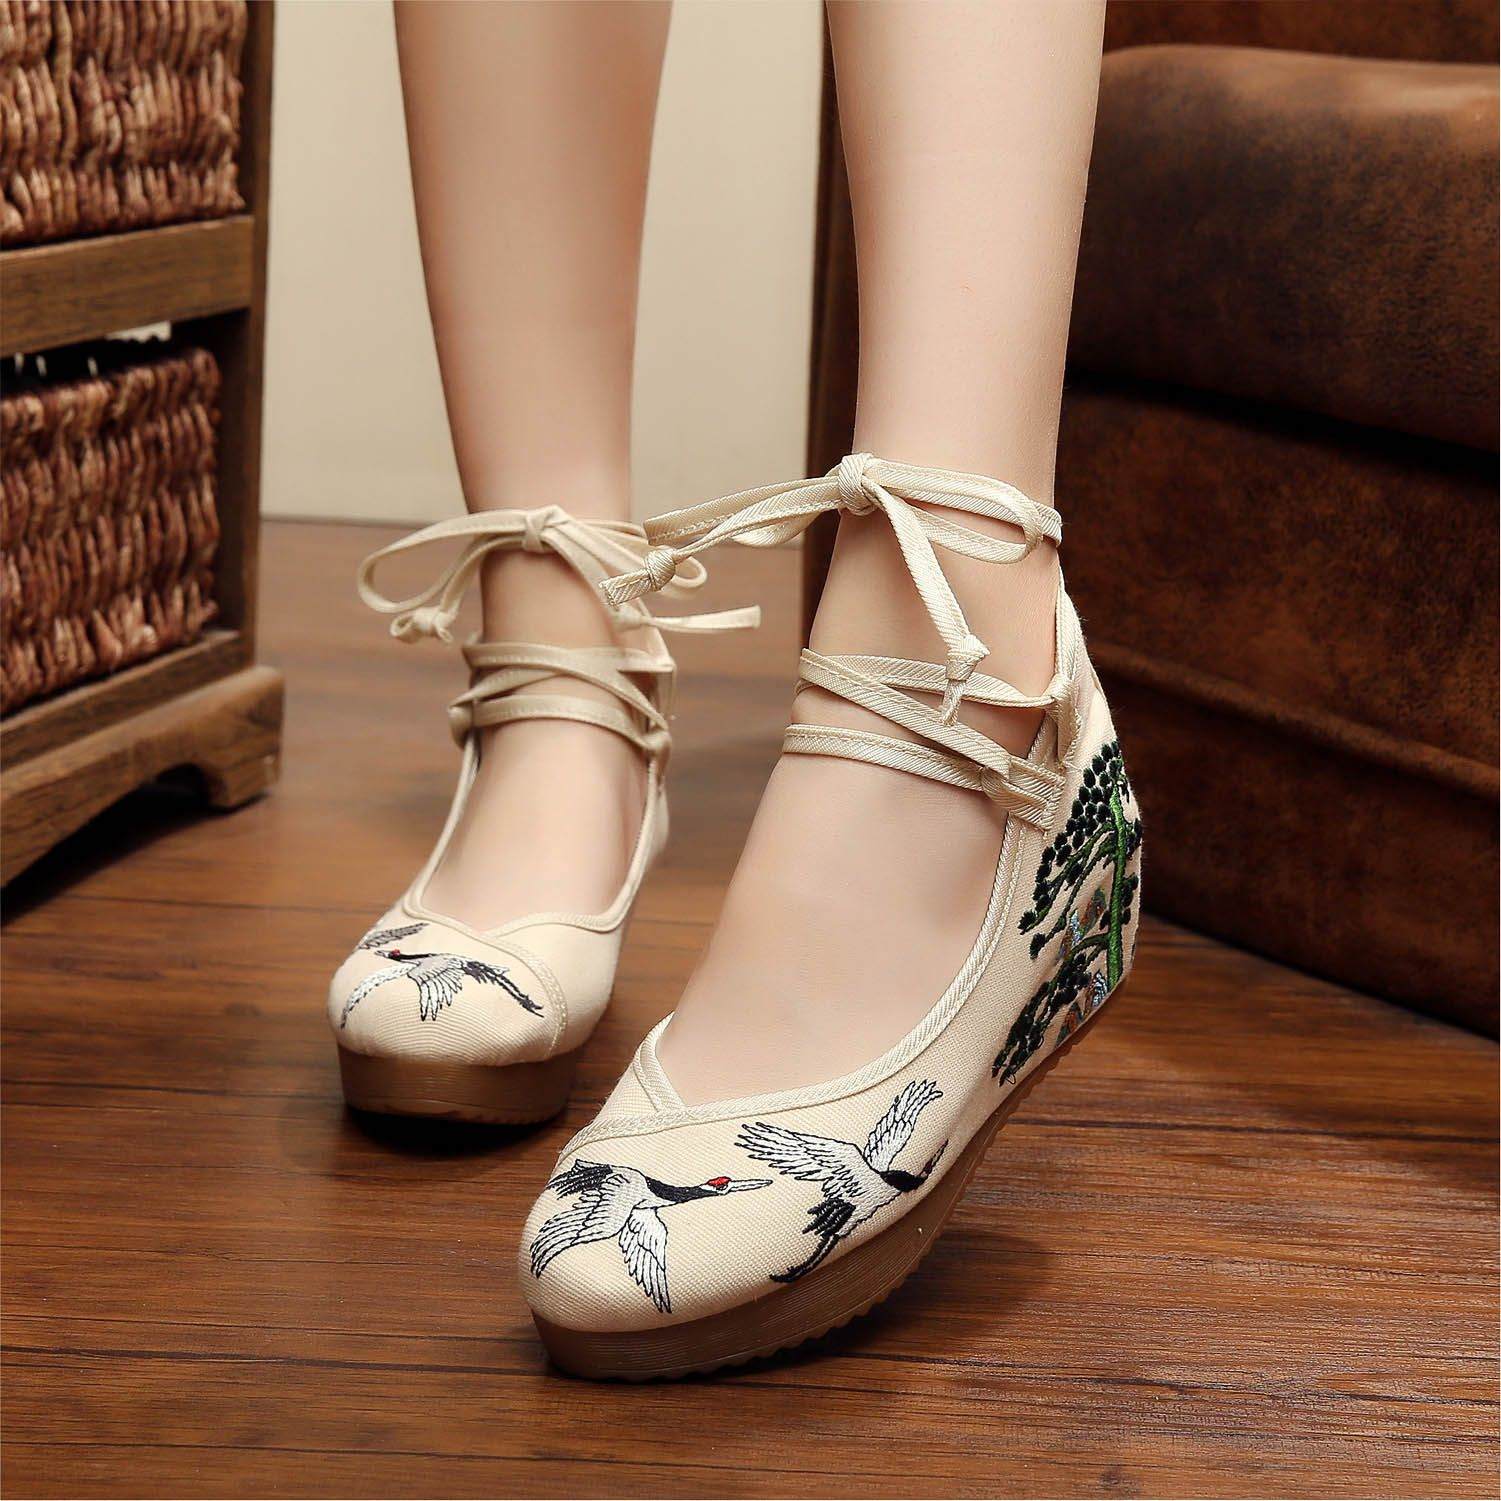 YRZB Women Chinese Embroidery Wedge Strappy Cotton Shoes in 2019 ... 23ebe50d6438